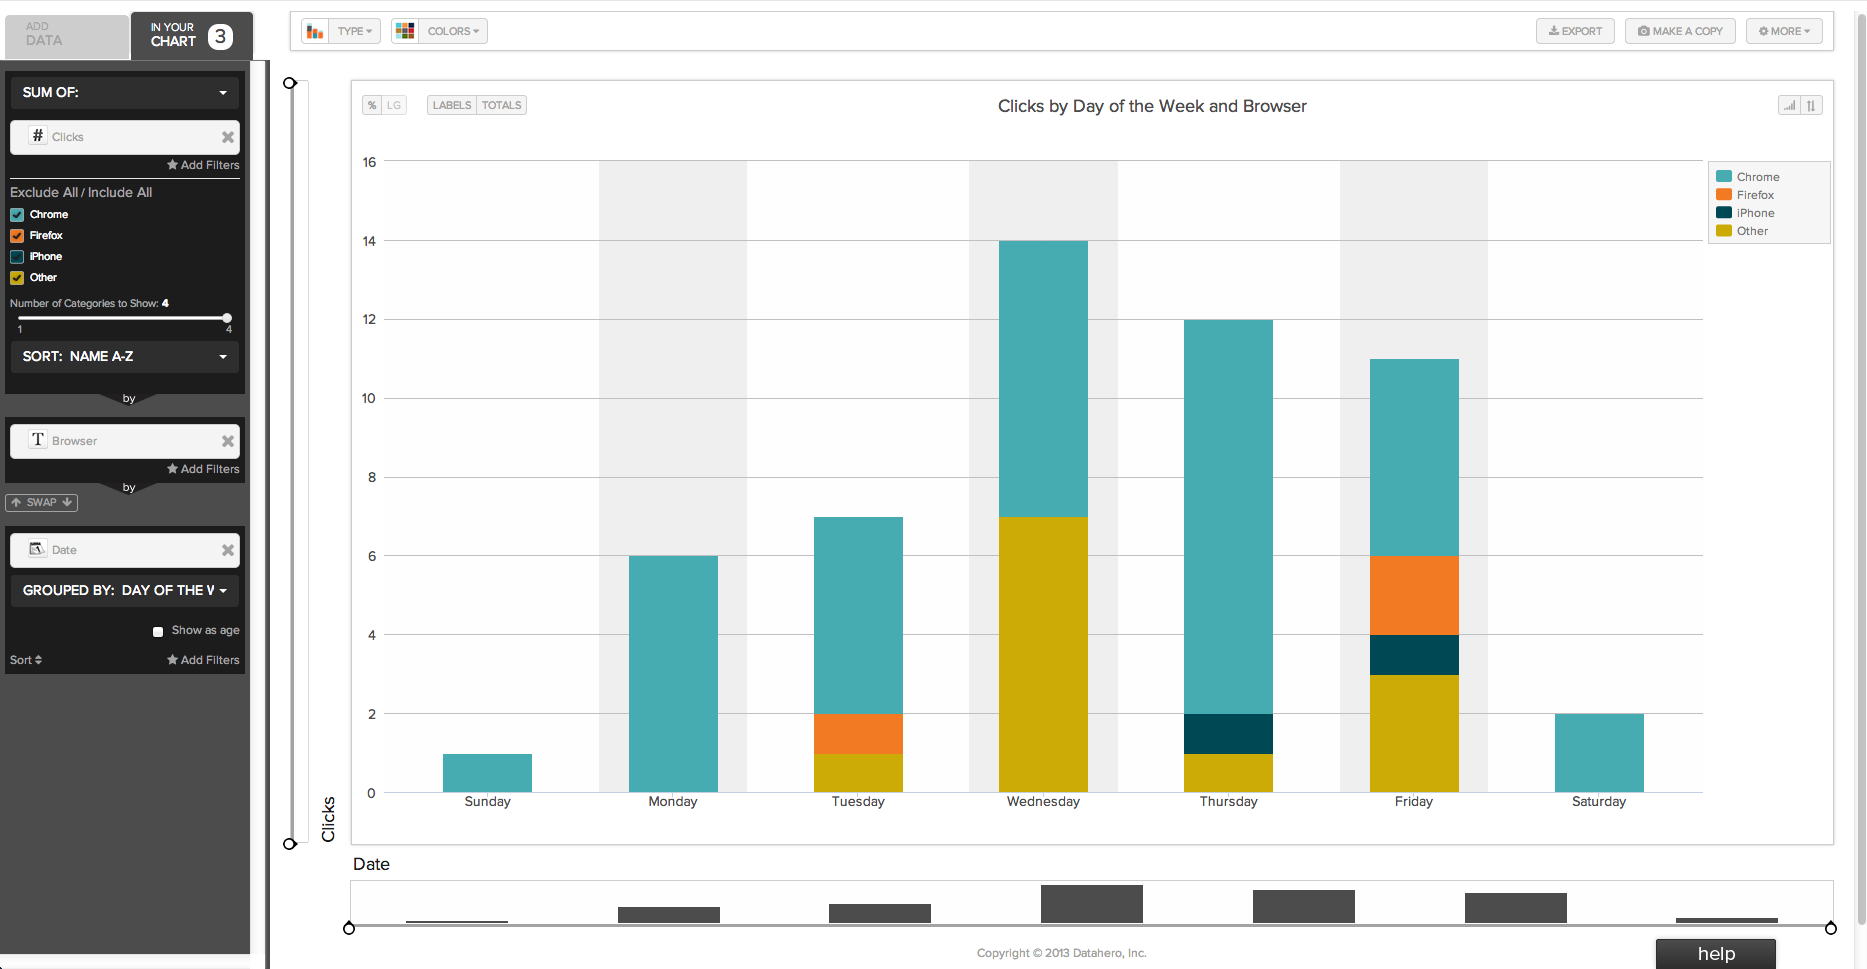 Users can also choose to include or exclude certain data from their charts